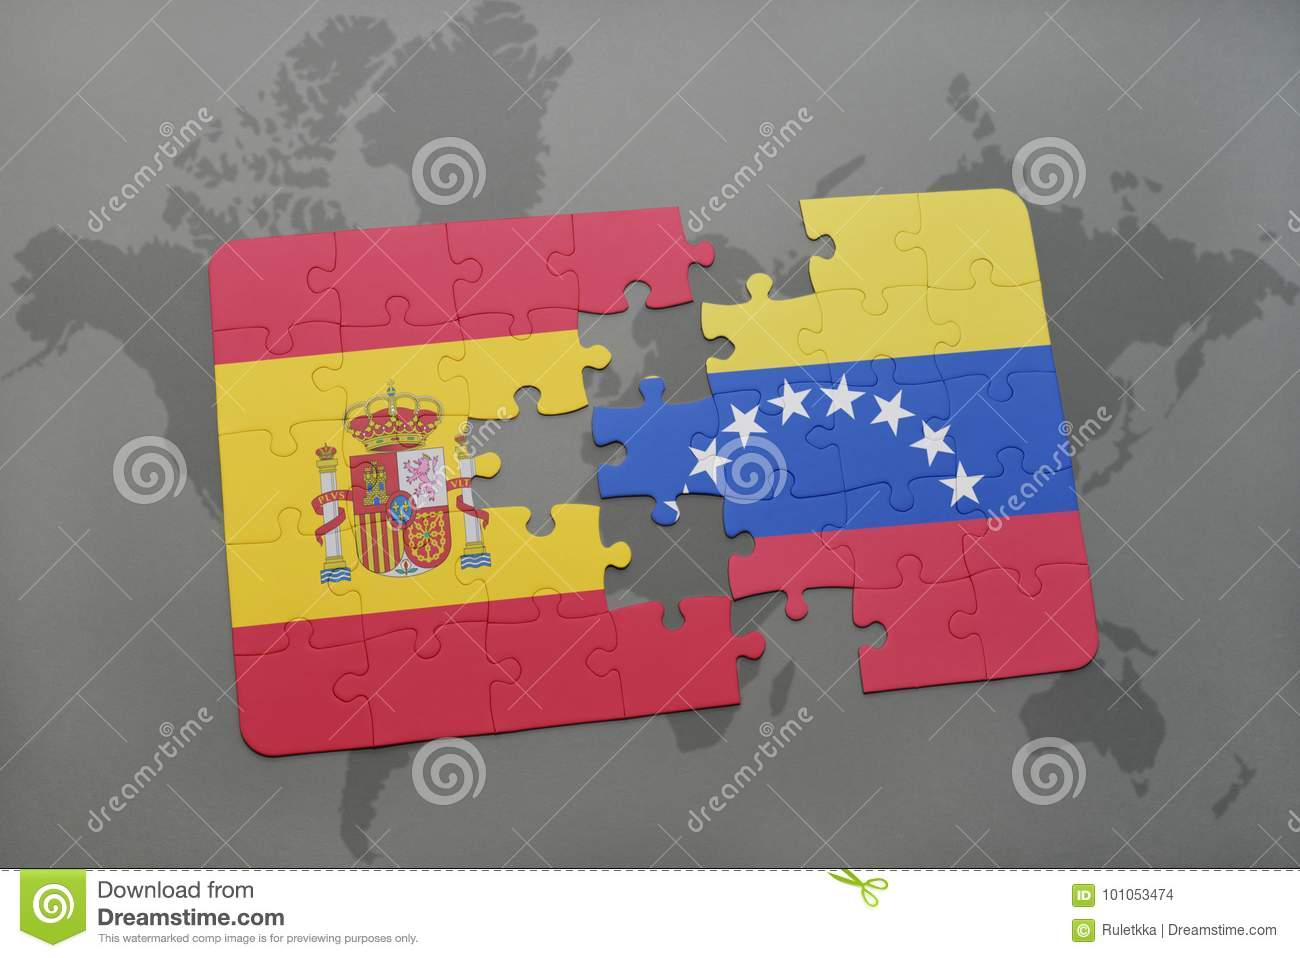 Puzzle With The National Flag Of Spain And Venezuela On A World Map ...